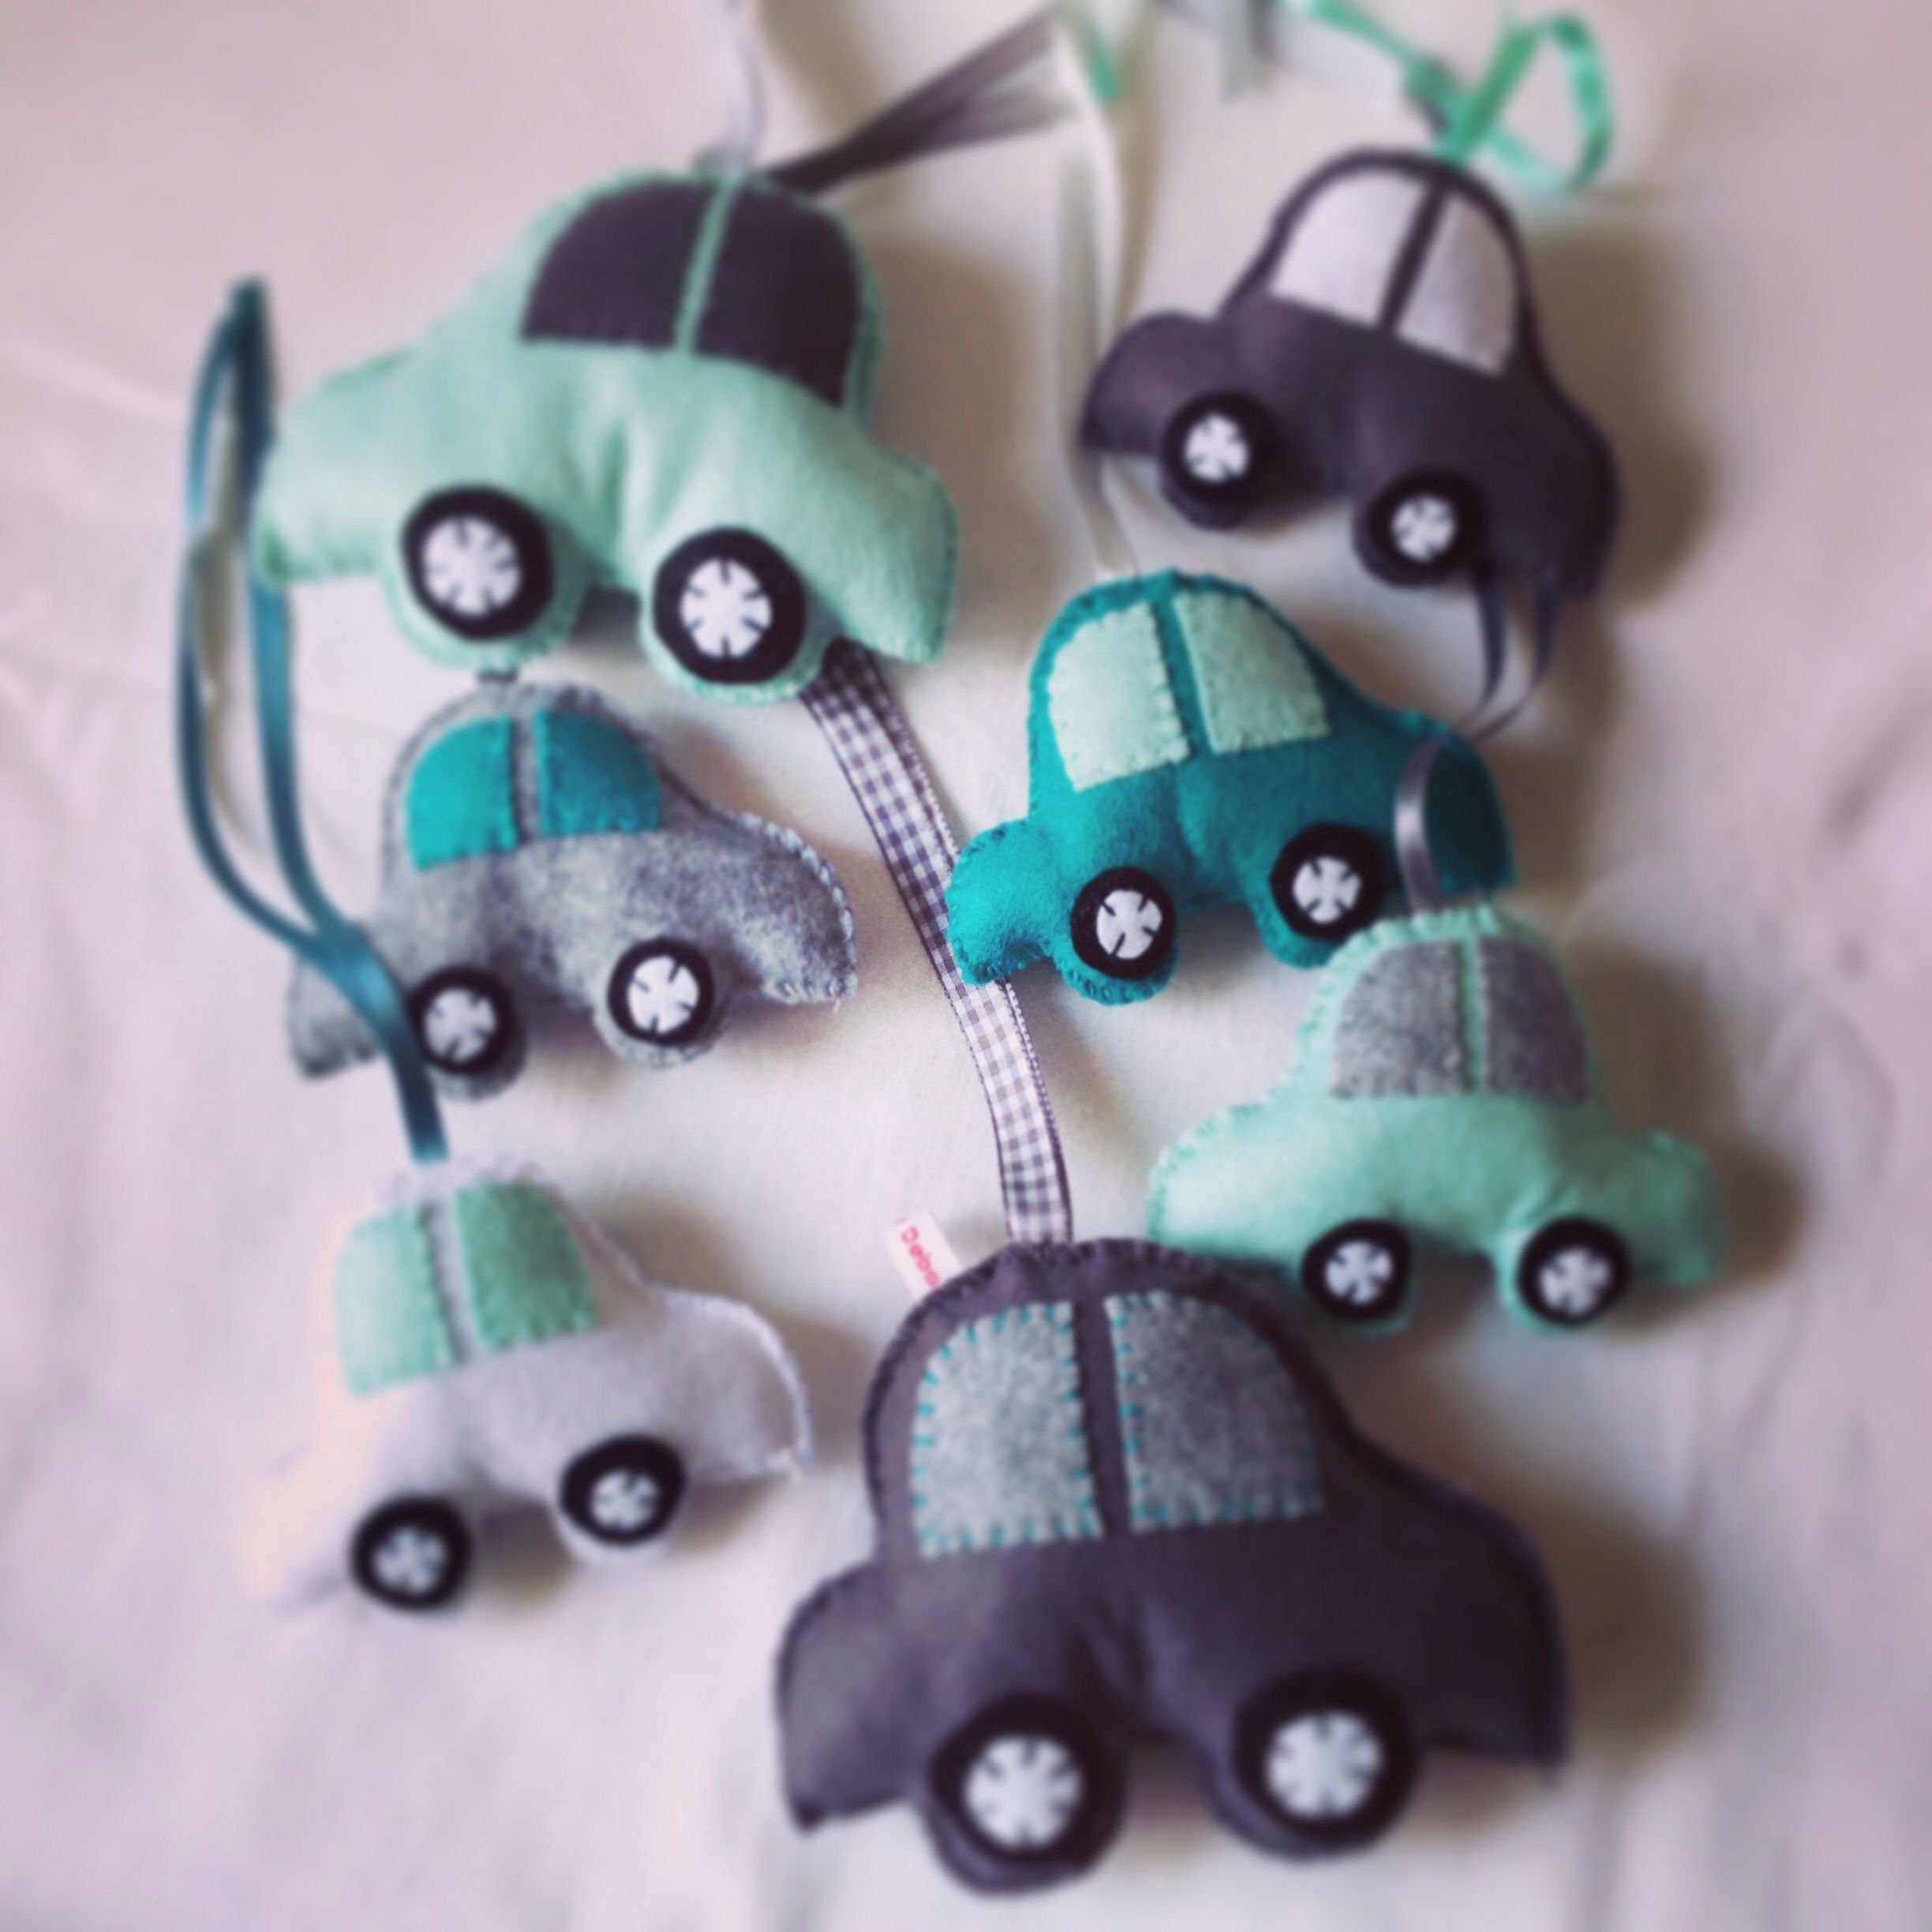 Slaapkamer Ideeen Mint Mint And Grey Felt Cars For Baby Mobile Mintgroen Vilt